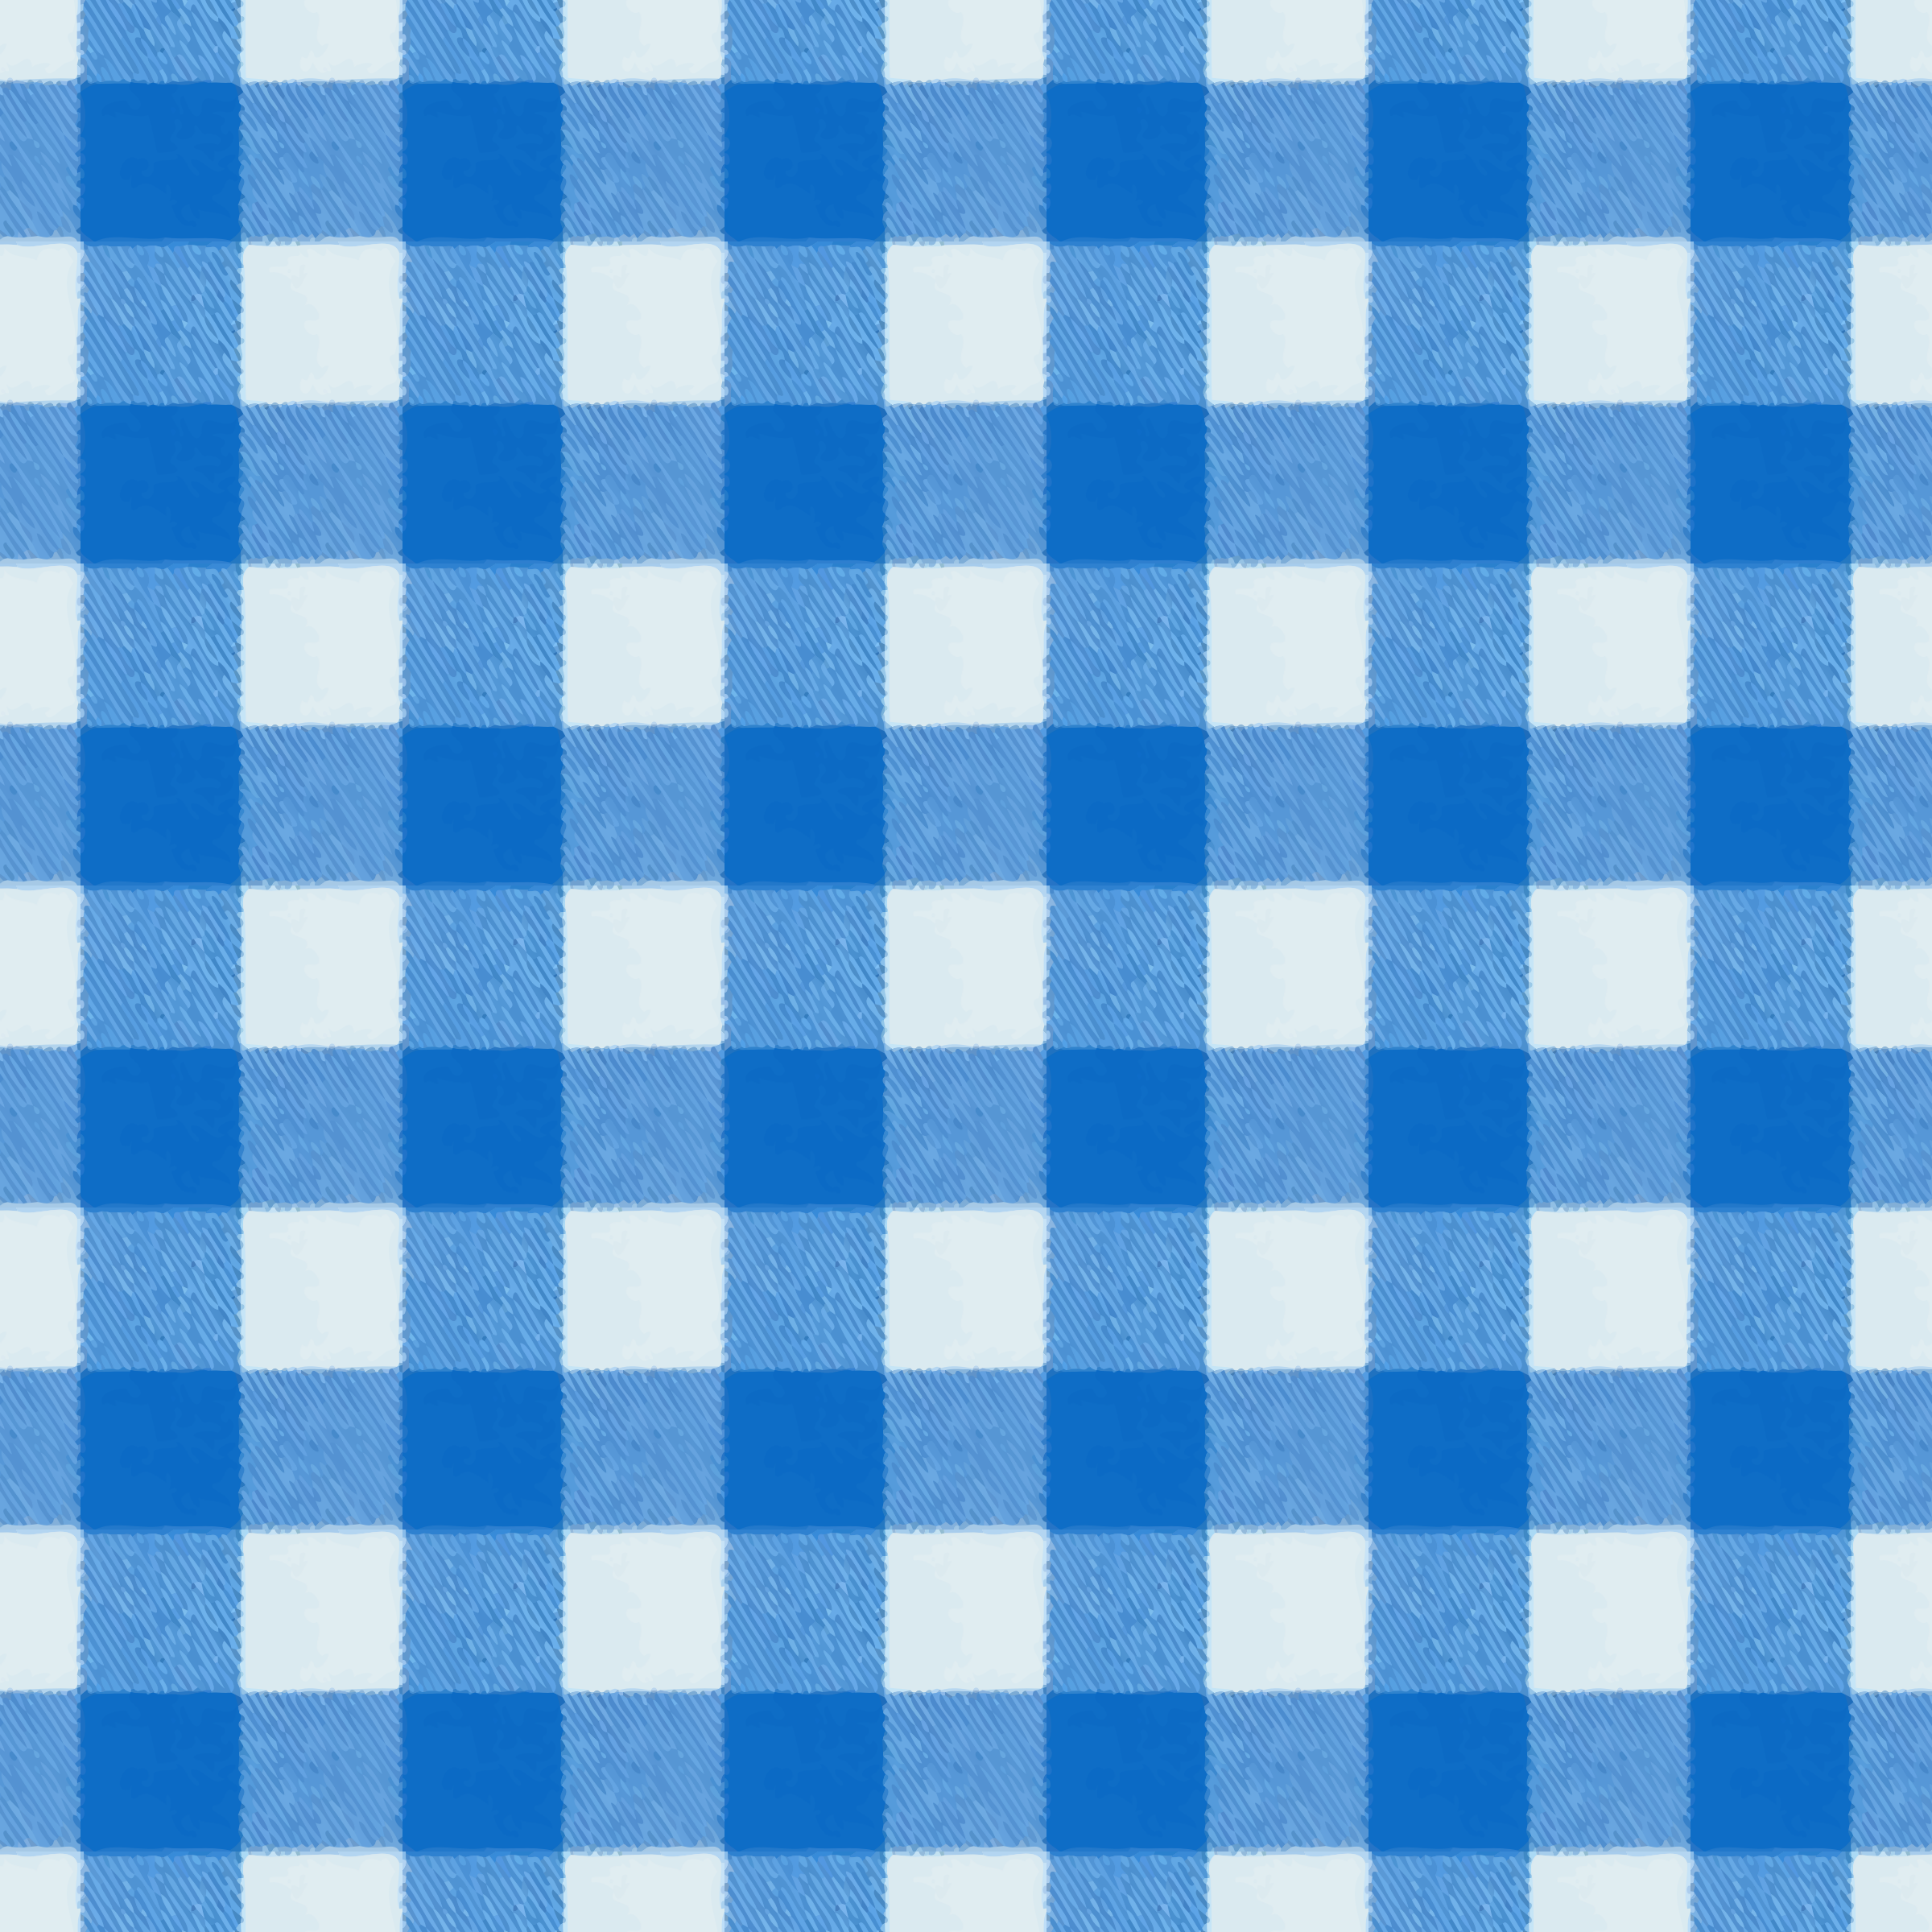 Chequered tablecloth by Firkin